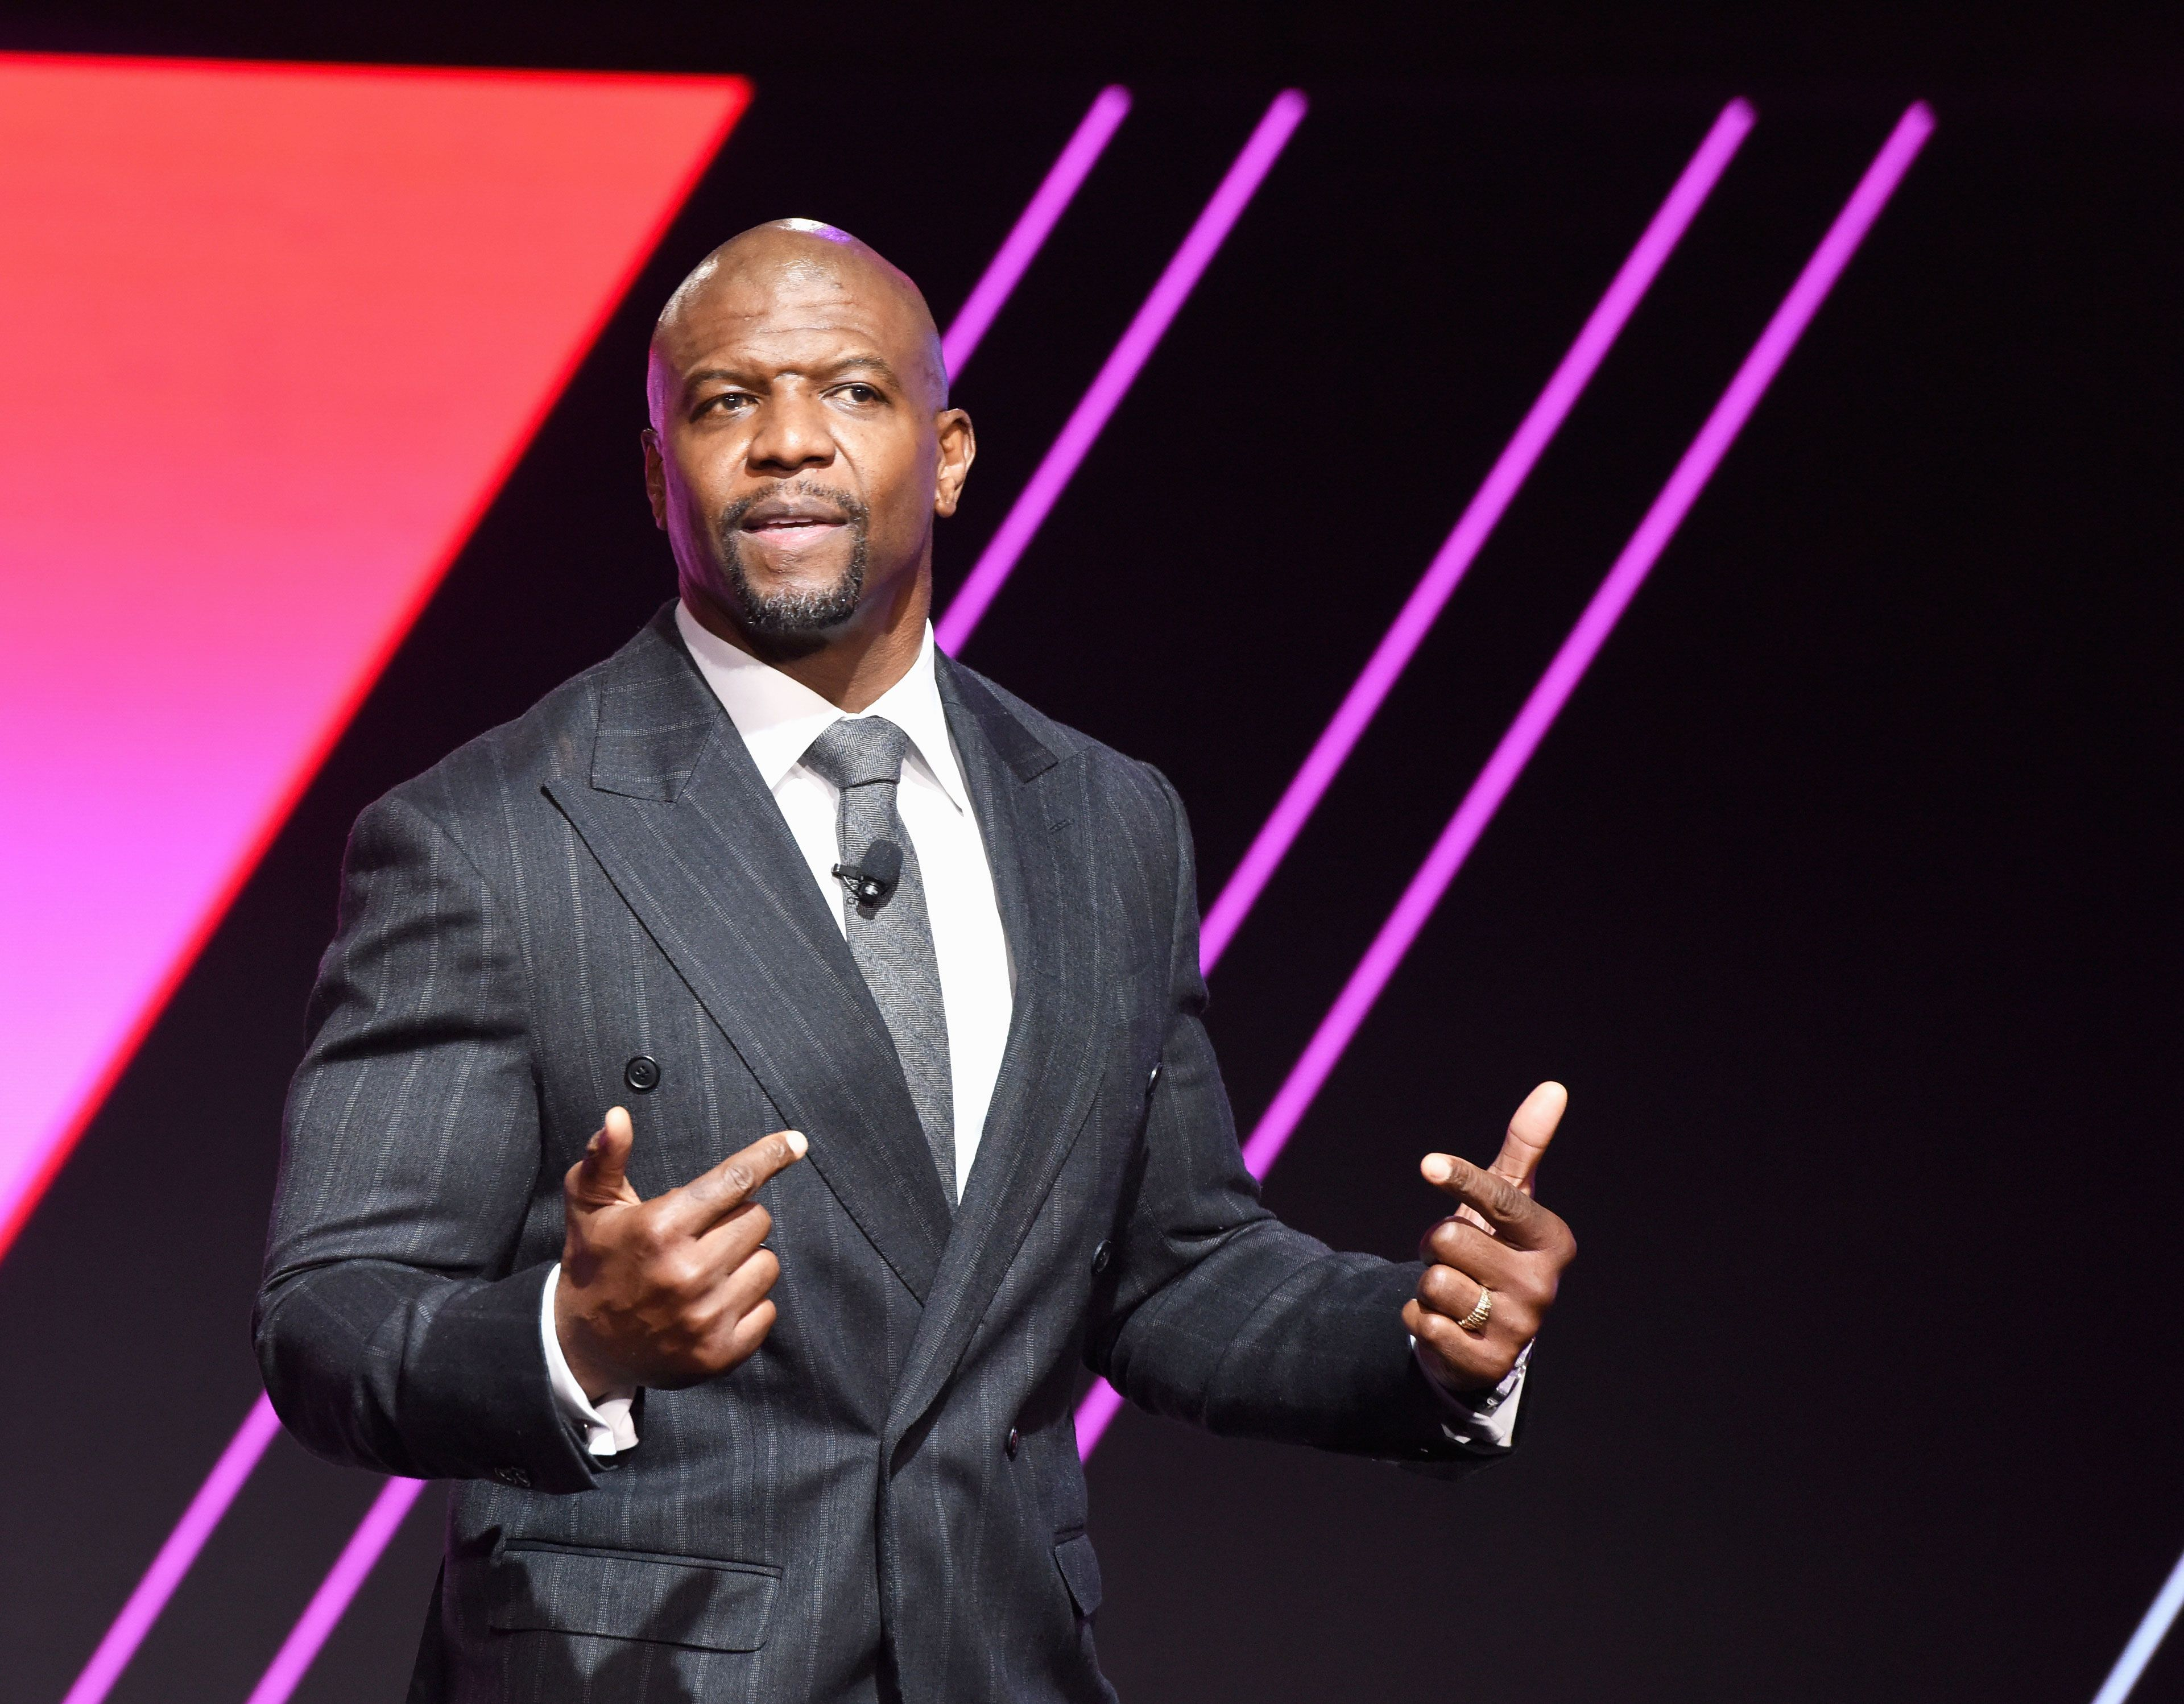 Terry Crews Says a Hotel Worker Racially Profiled Him the Day Before His Senate Testimony